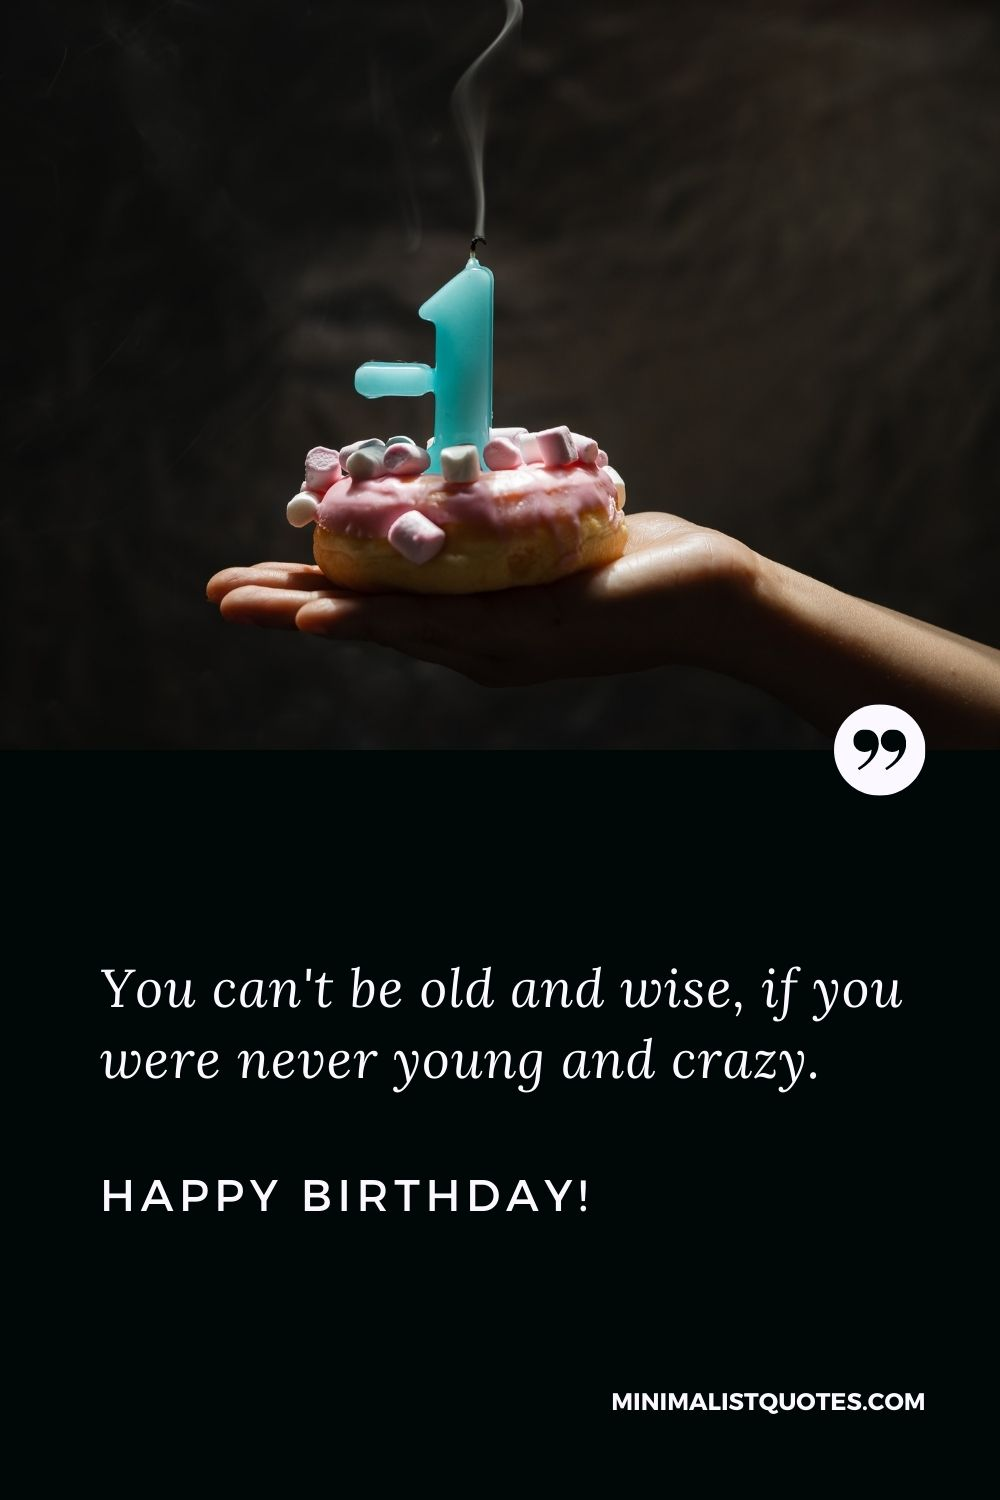 Happy birthday wishes for BFF: You can't be old and wise if you were never young and crazy.